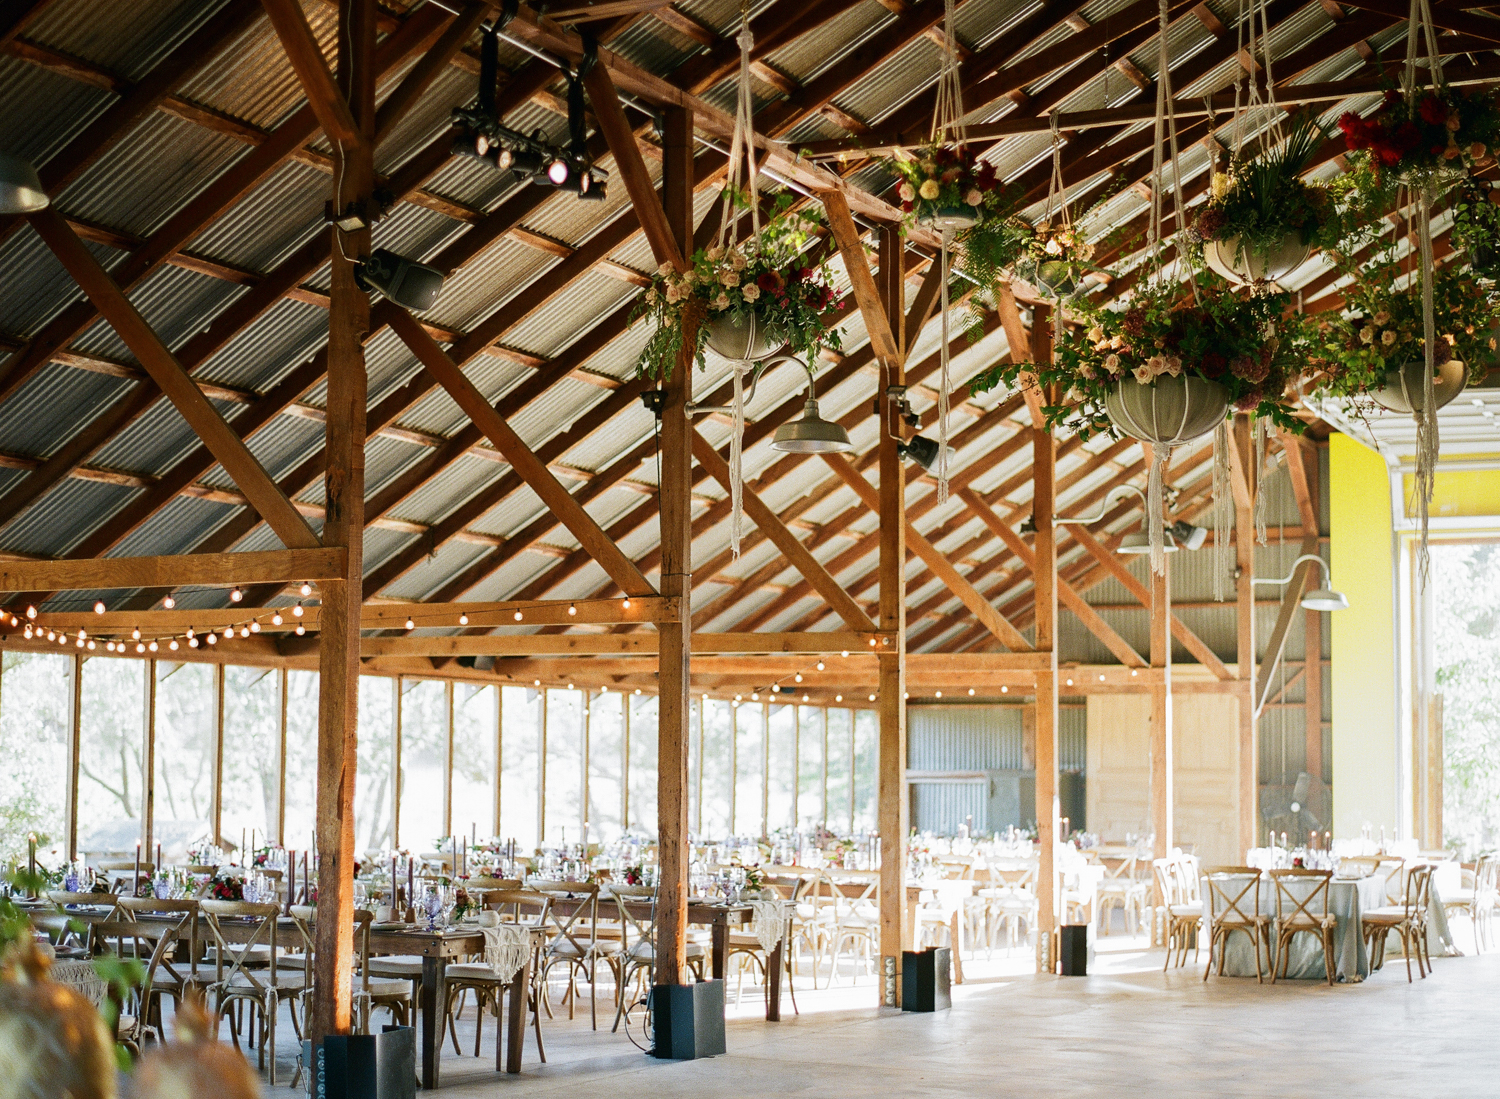 A Napa ranch wedding reception held in an airy barn with hanging planters and bohemian decor; Sylvie Gil Photography